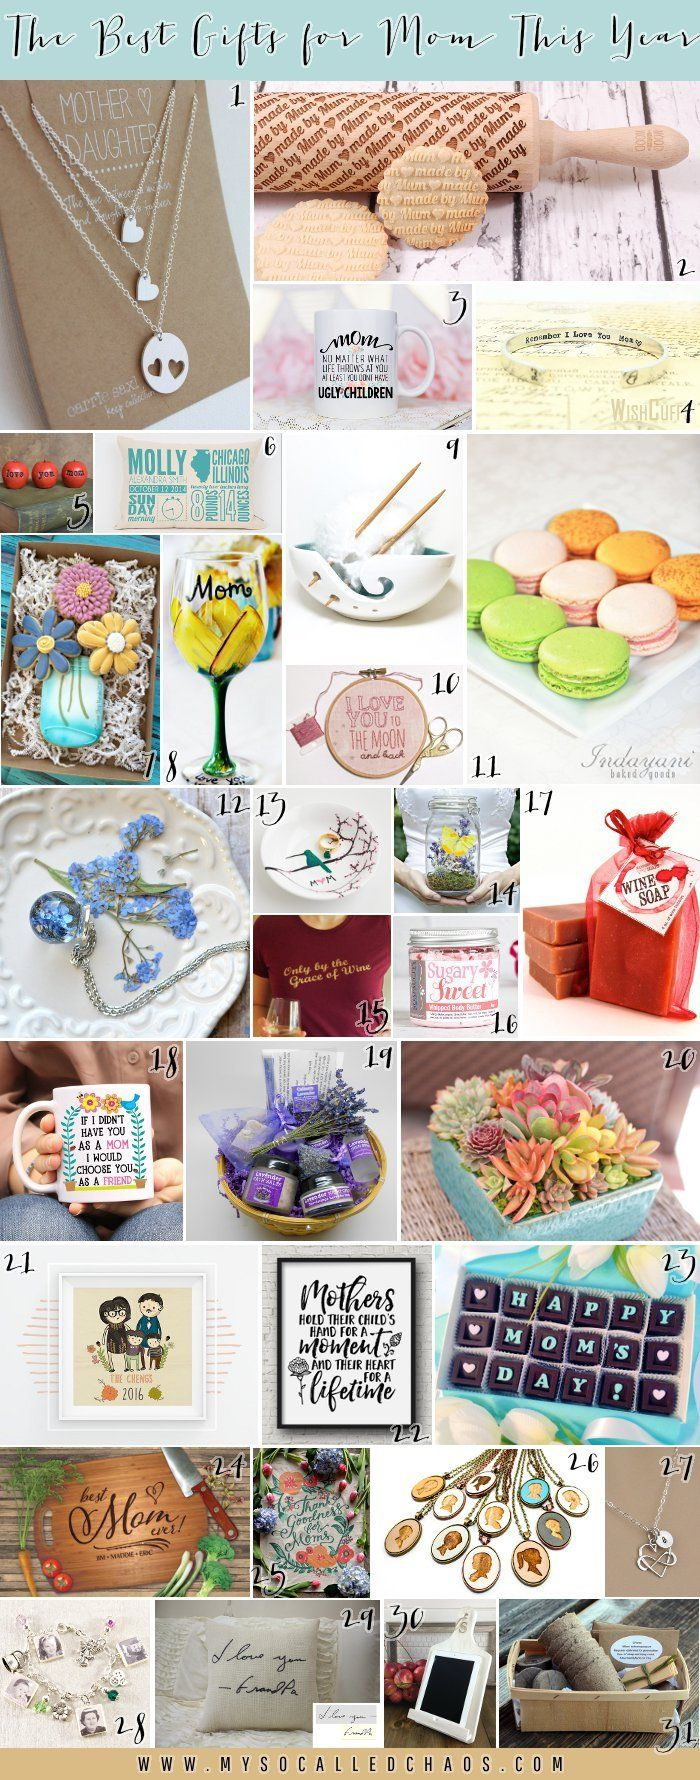 Gifts for Mom | The Buyable or DIYable Mother's Day Gifts http://mysocalledchaos.com/2016/04/best-gifts-for-mom-this-year.html